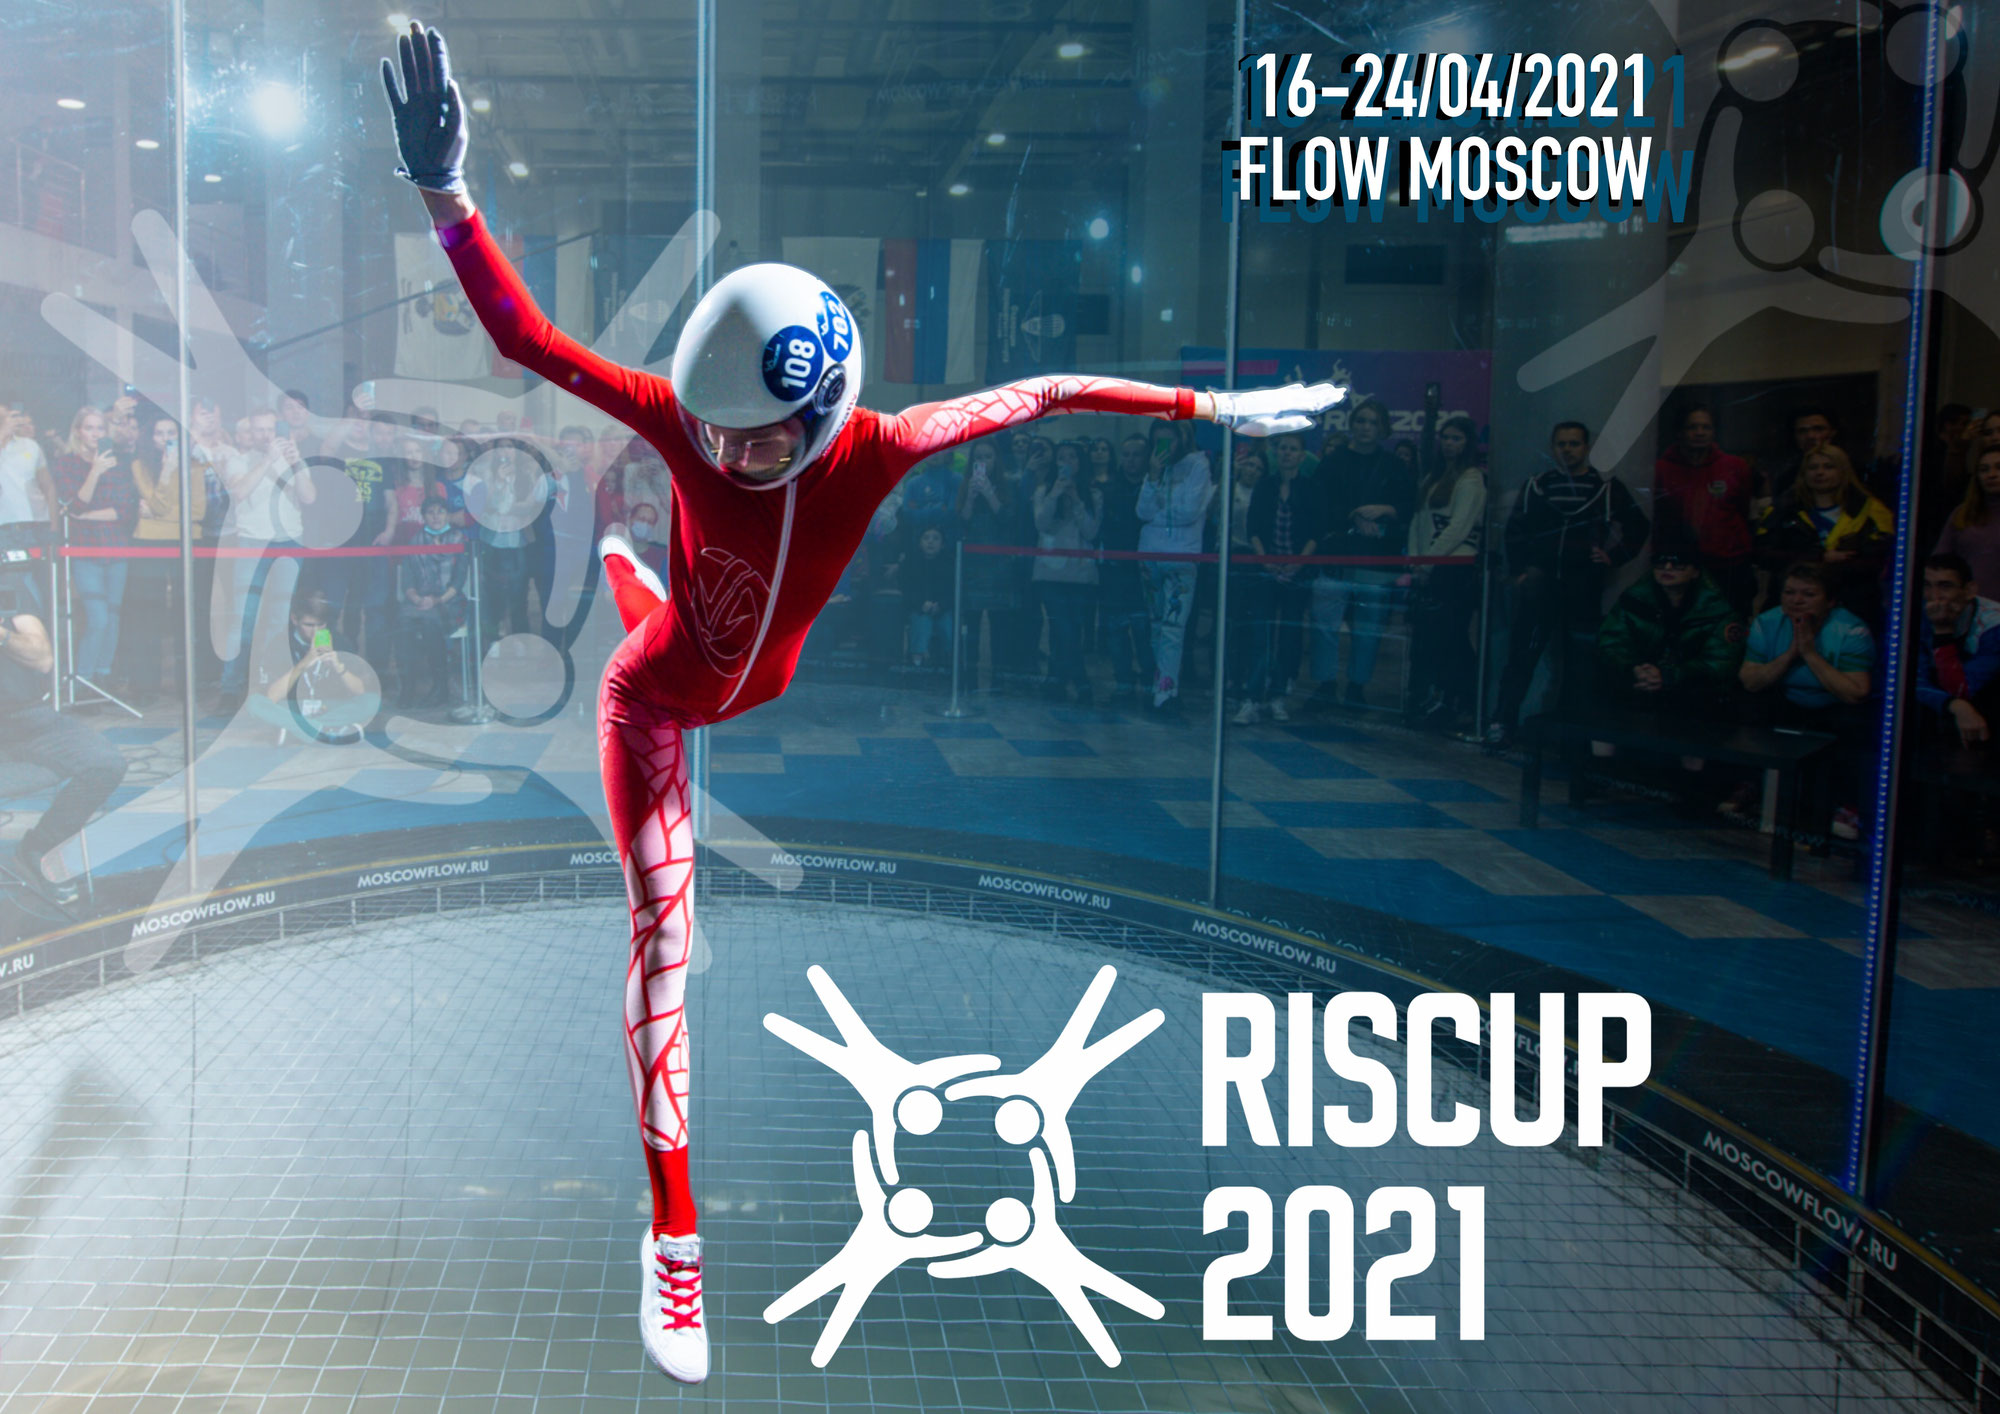 RISCUP 2021: СКОРО!